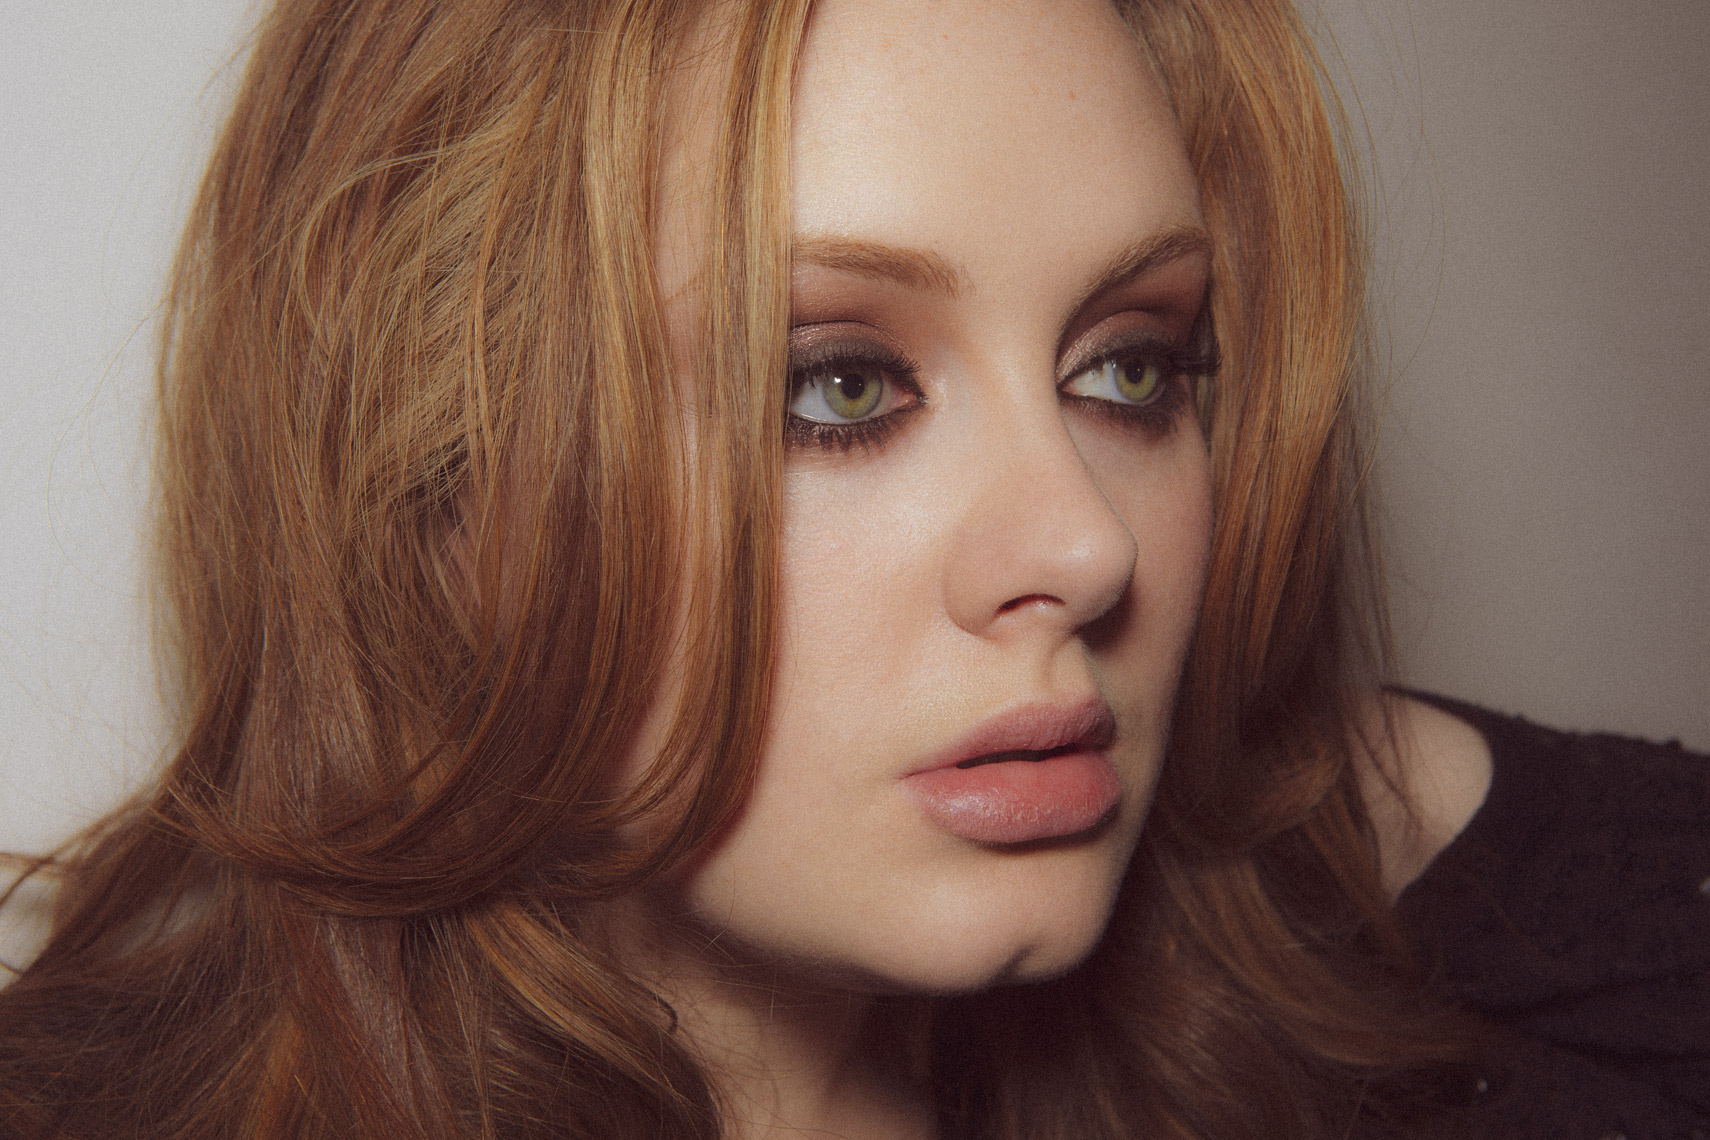 Adele by Tom Oxley